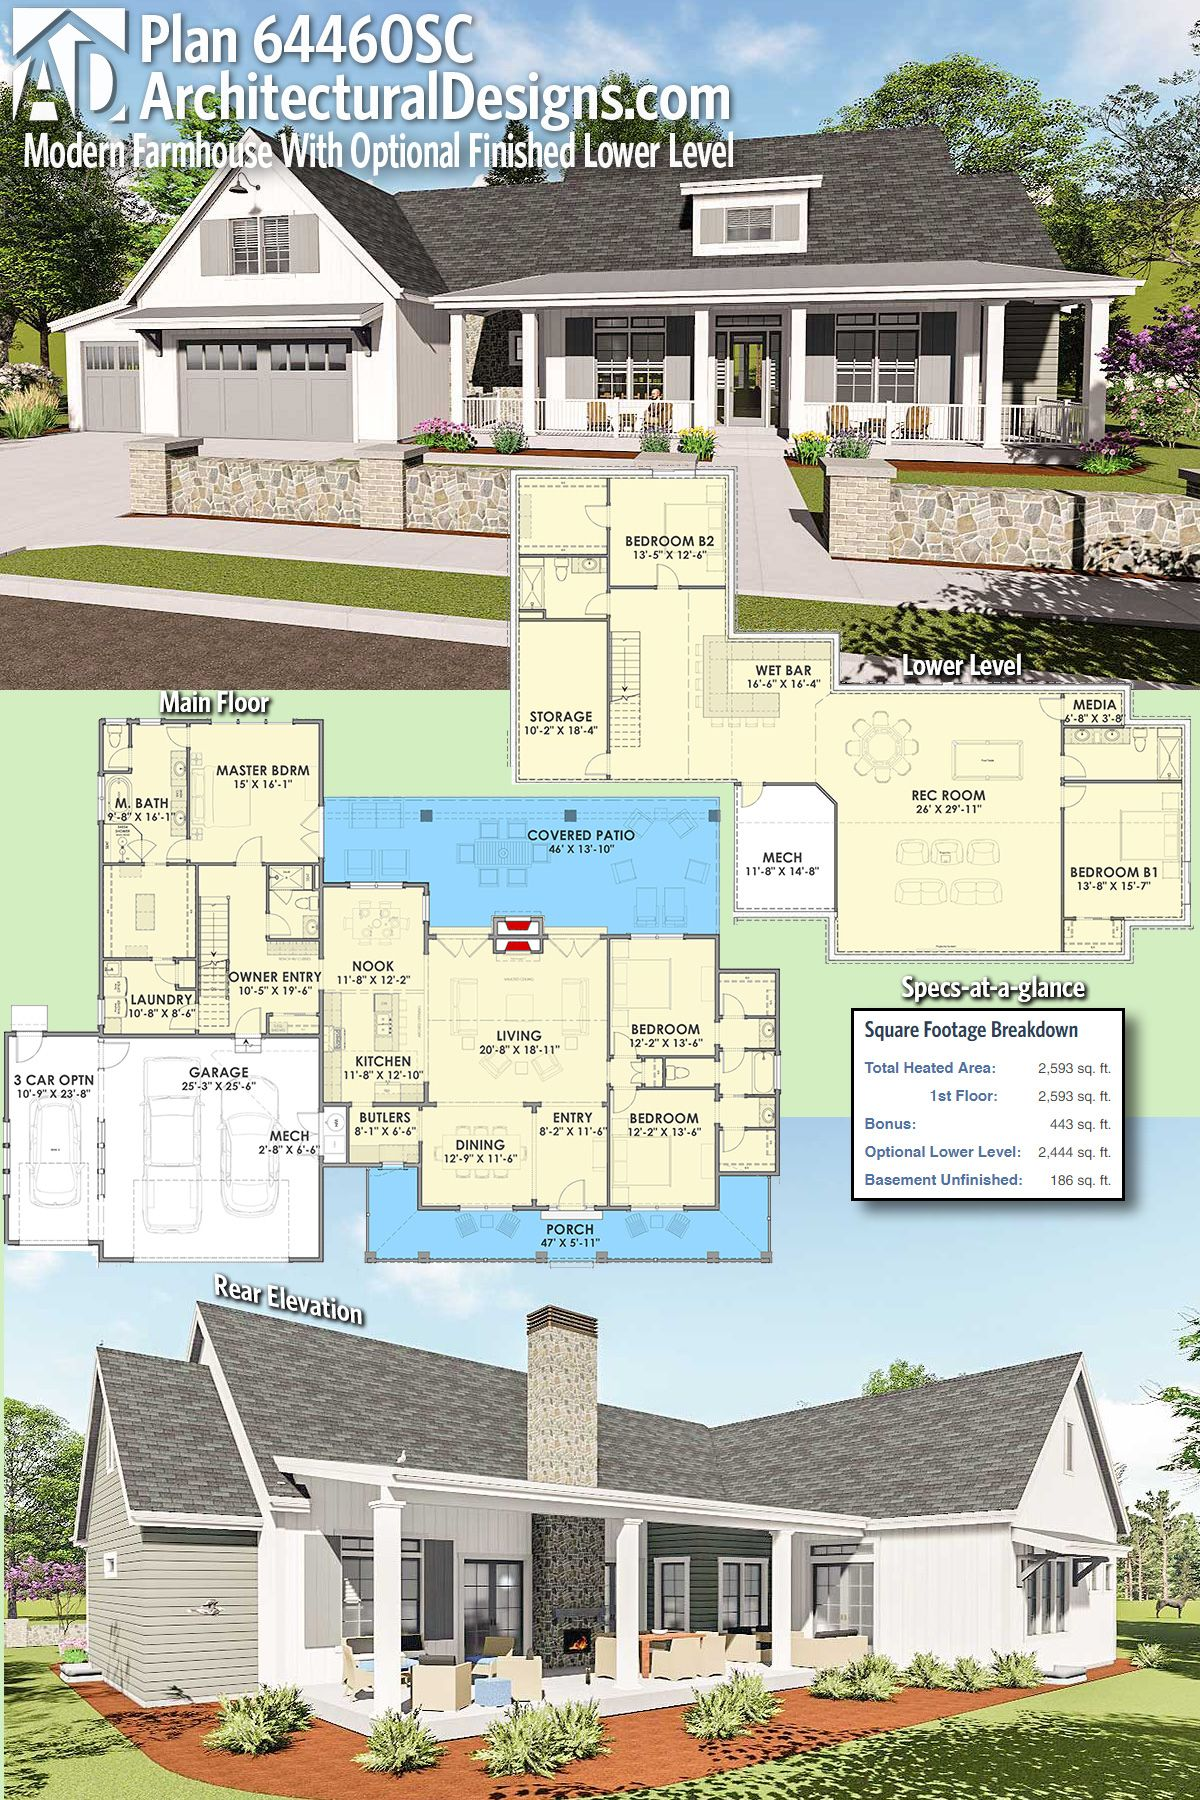 Introducing architectural designs modern farmhouse plan for Flexible house plans